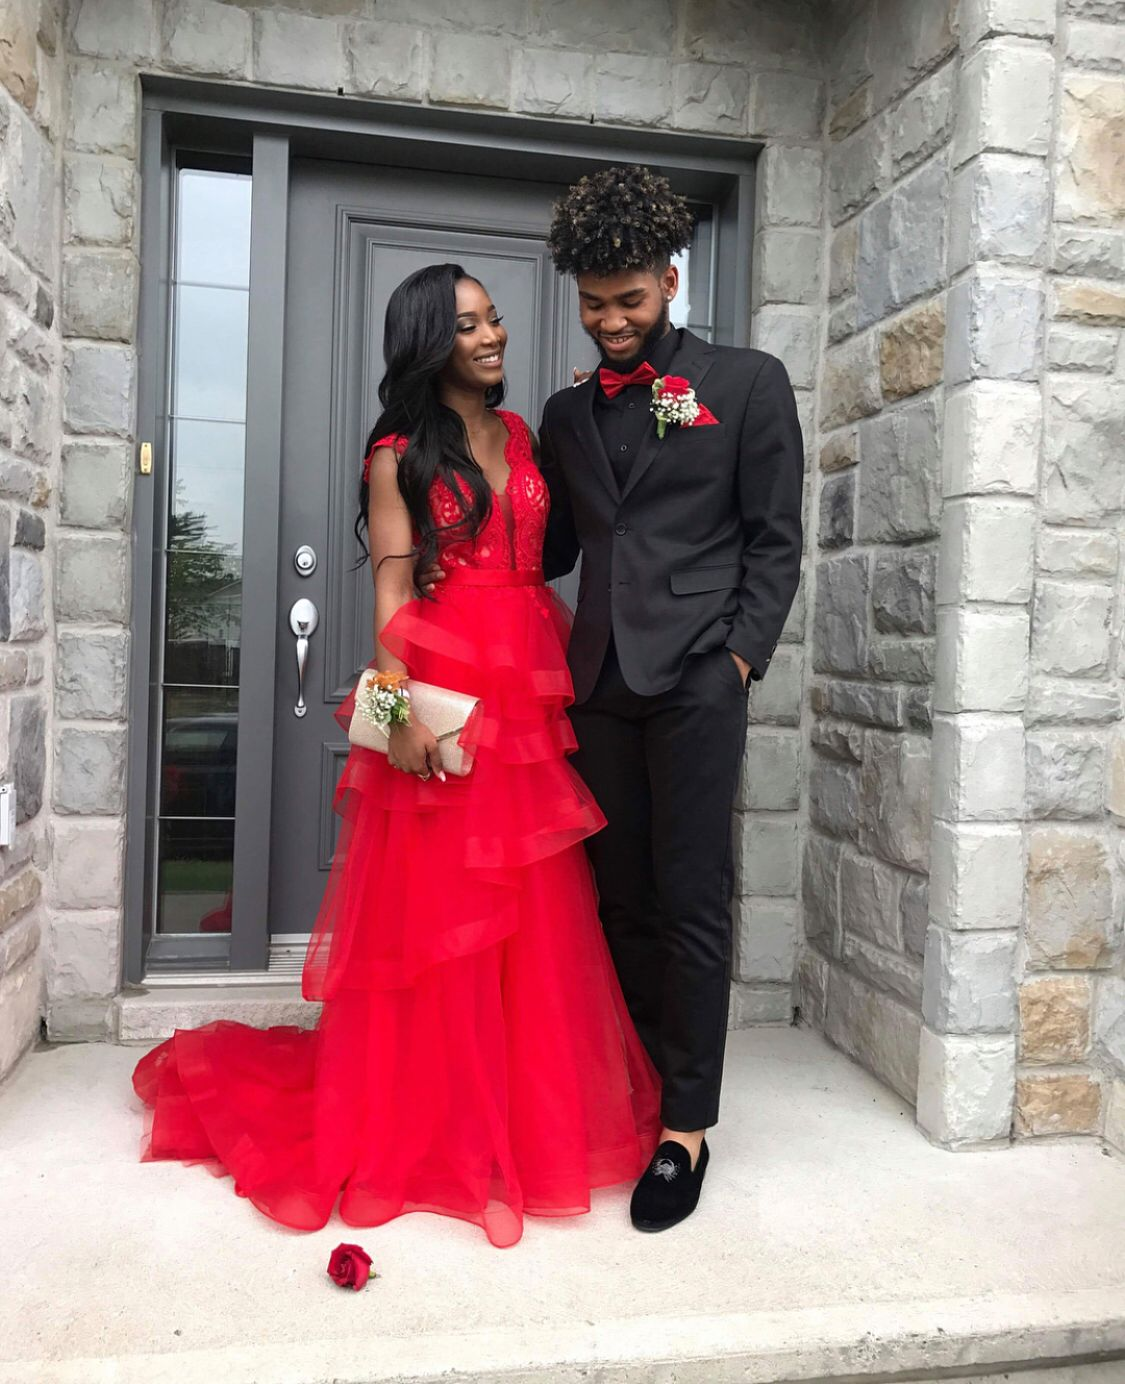 Riityayeѕt Jaℓa1205 Prom Outfits For Guys Red Prom Suit Red Tux Prom [ 1384 x 1125 Pixel ]